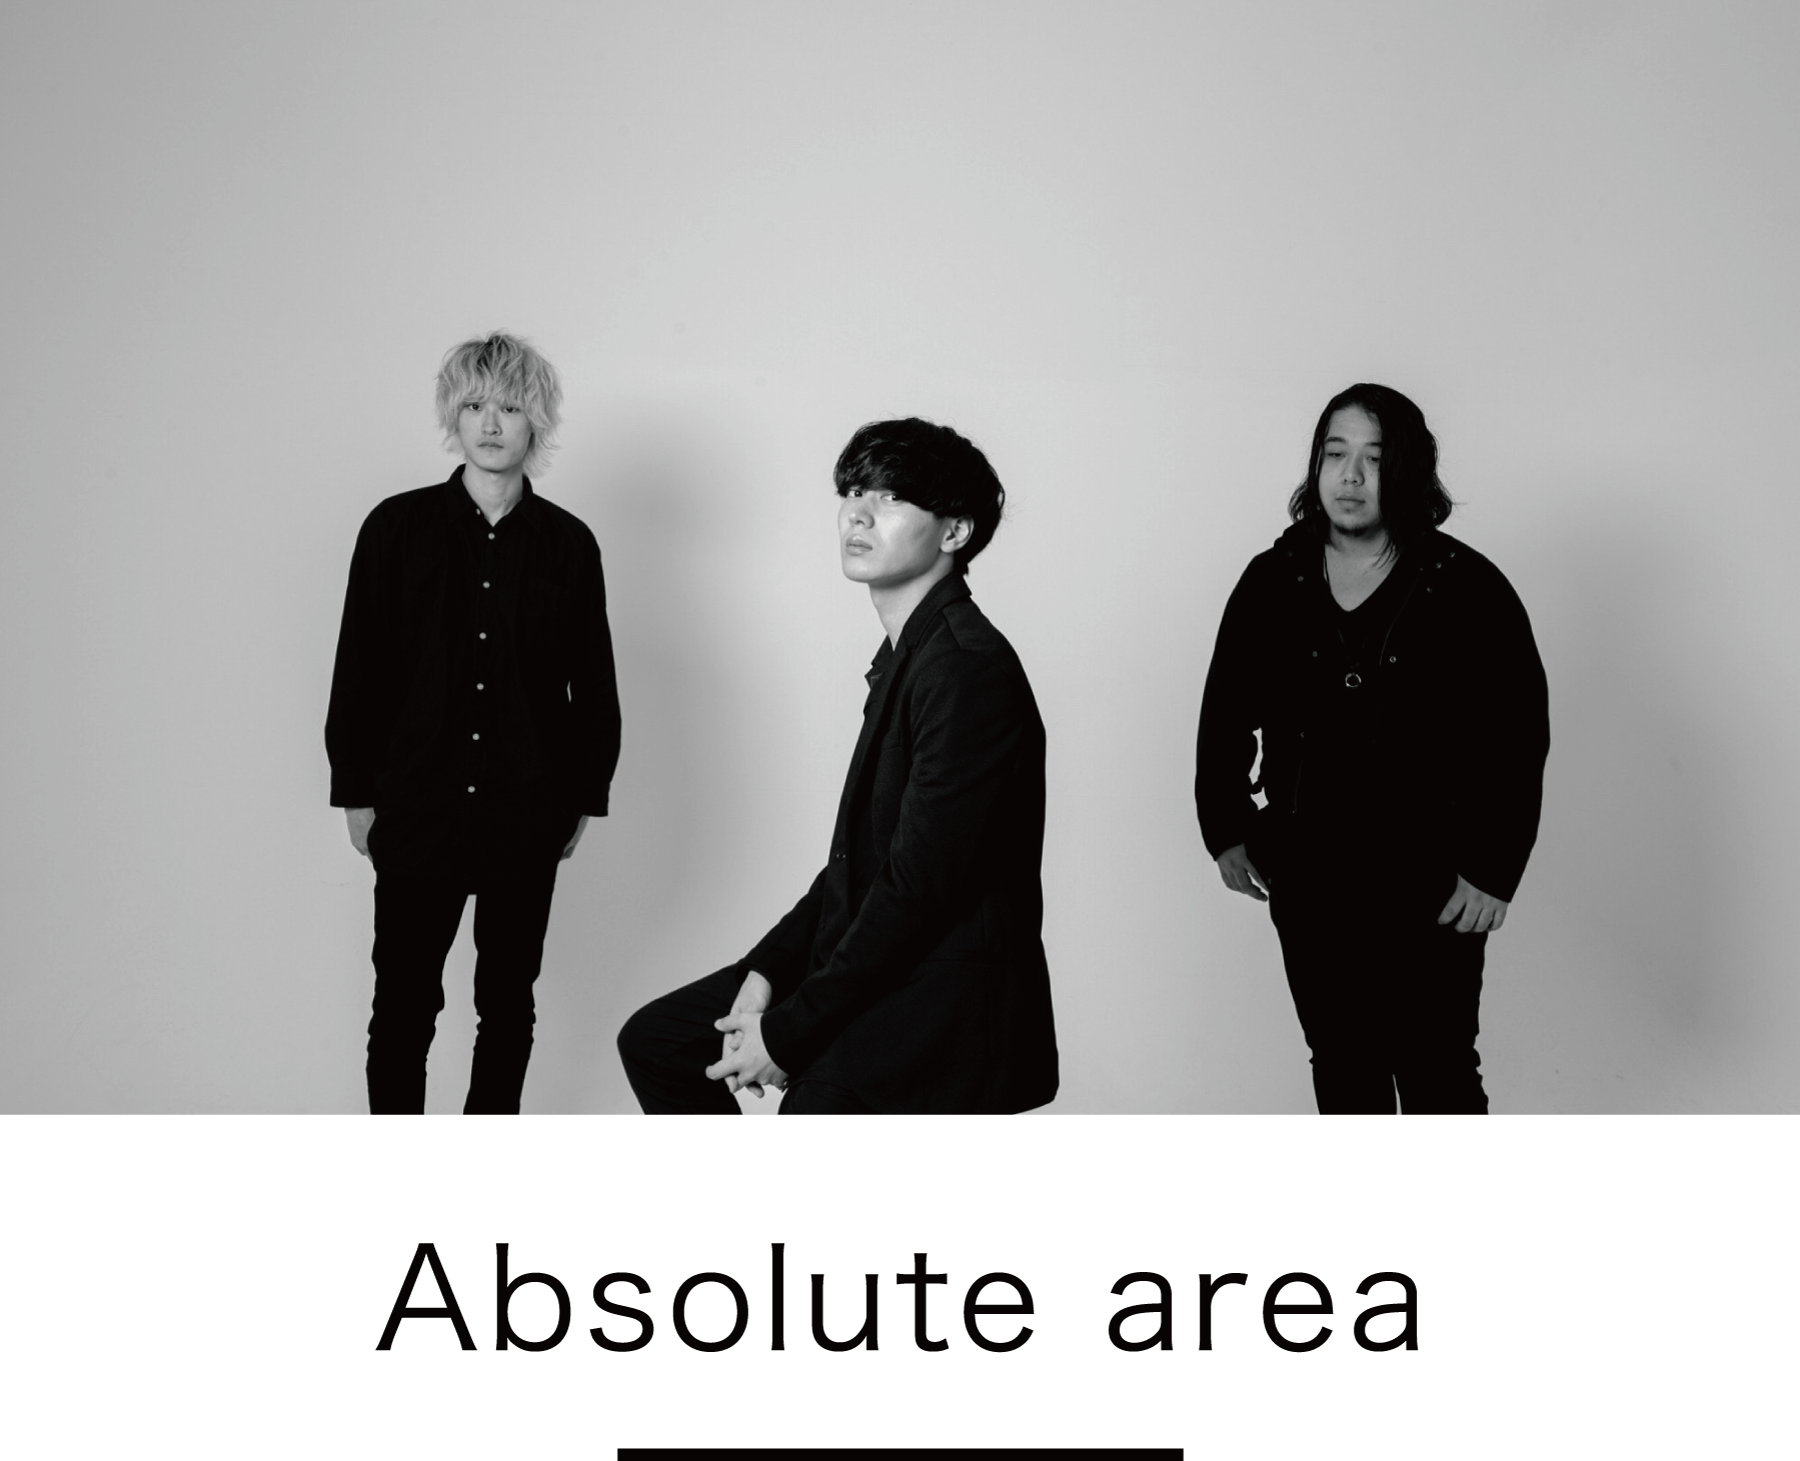 Absolute area